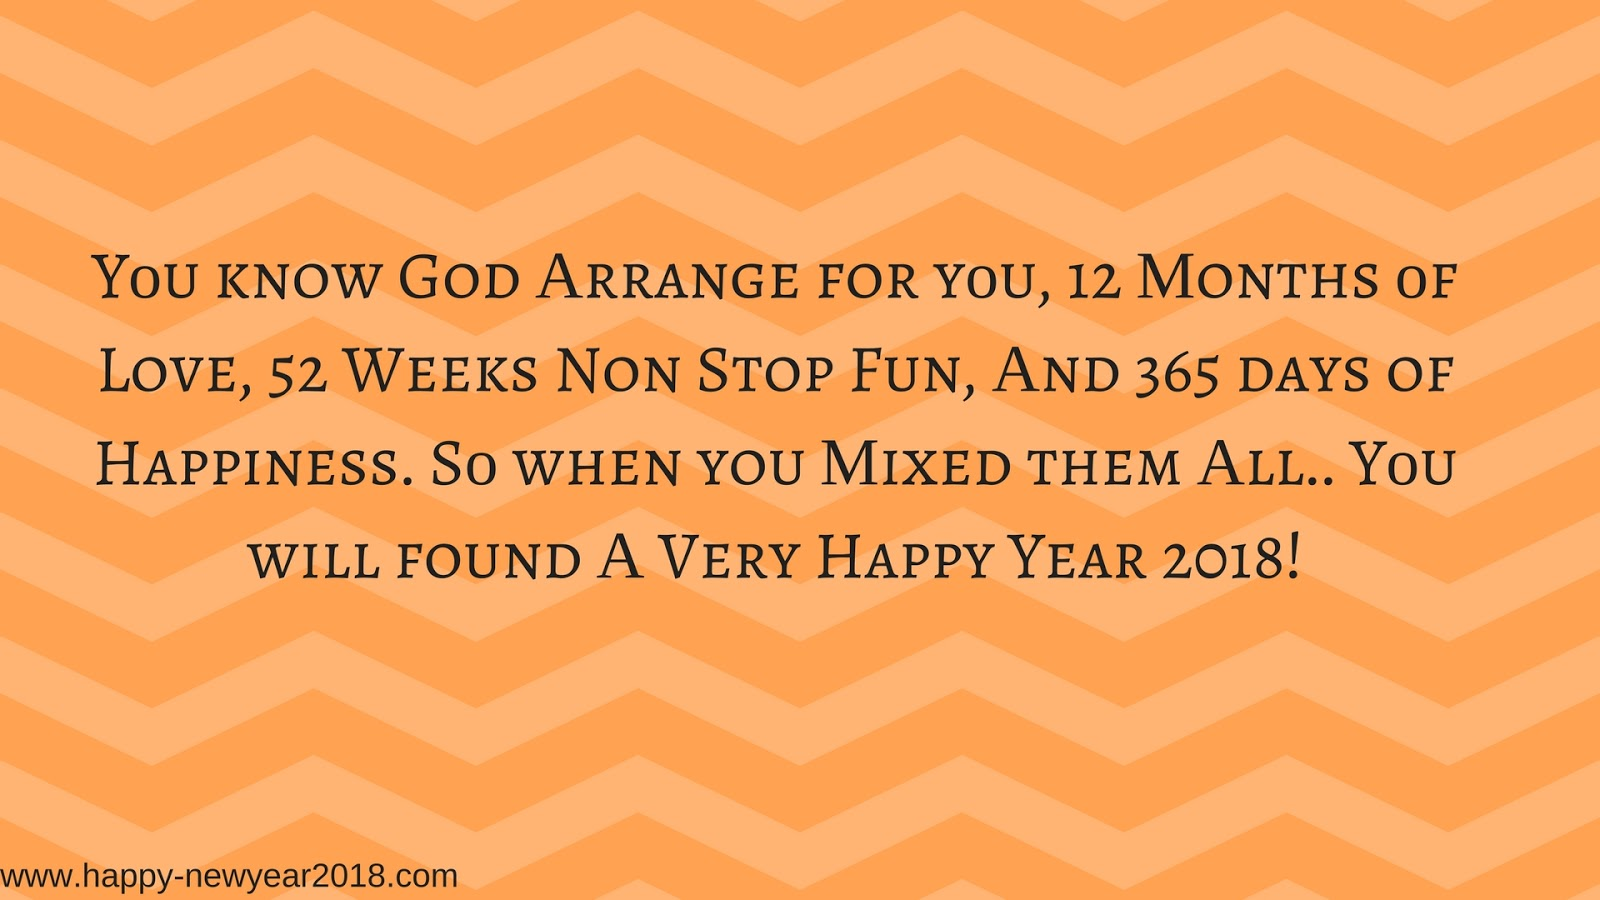 new year quotes 2018 happy new year 2018 images happy new year 2018 wishes